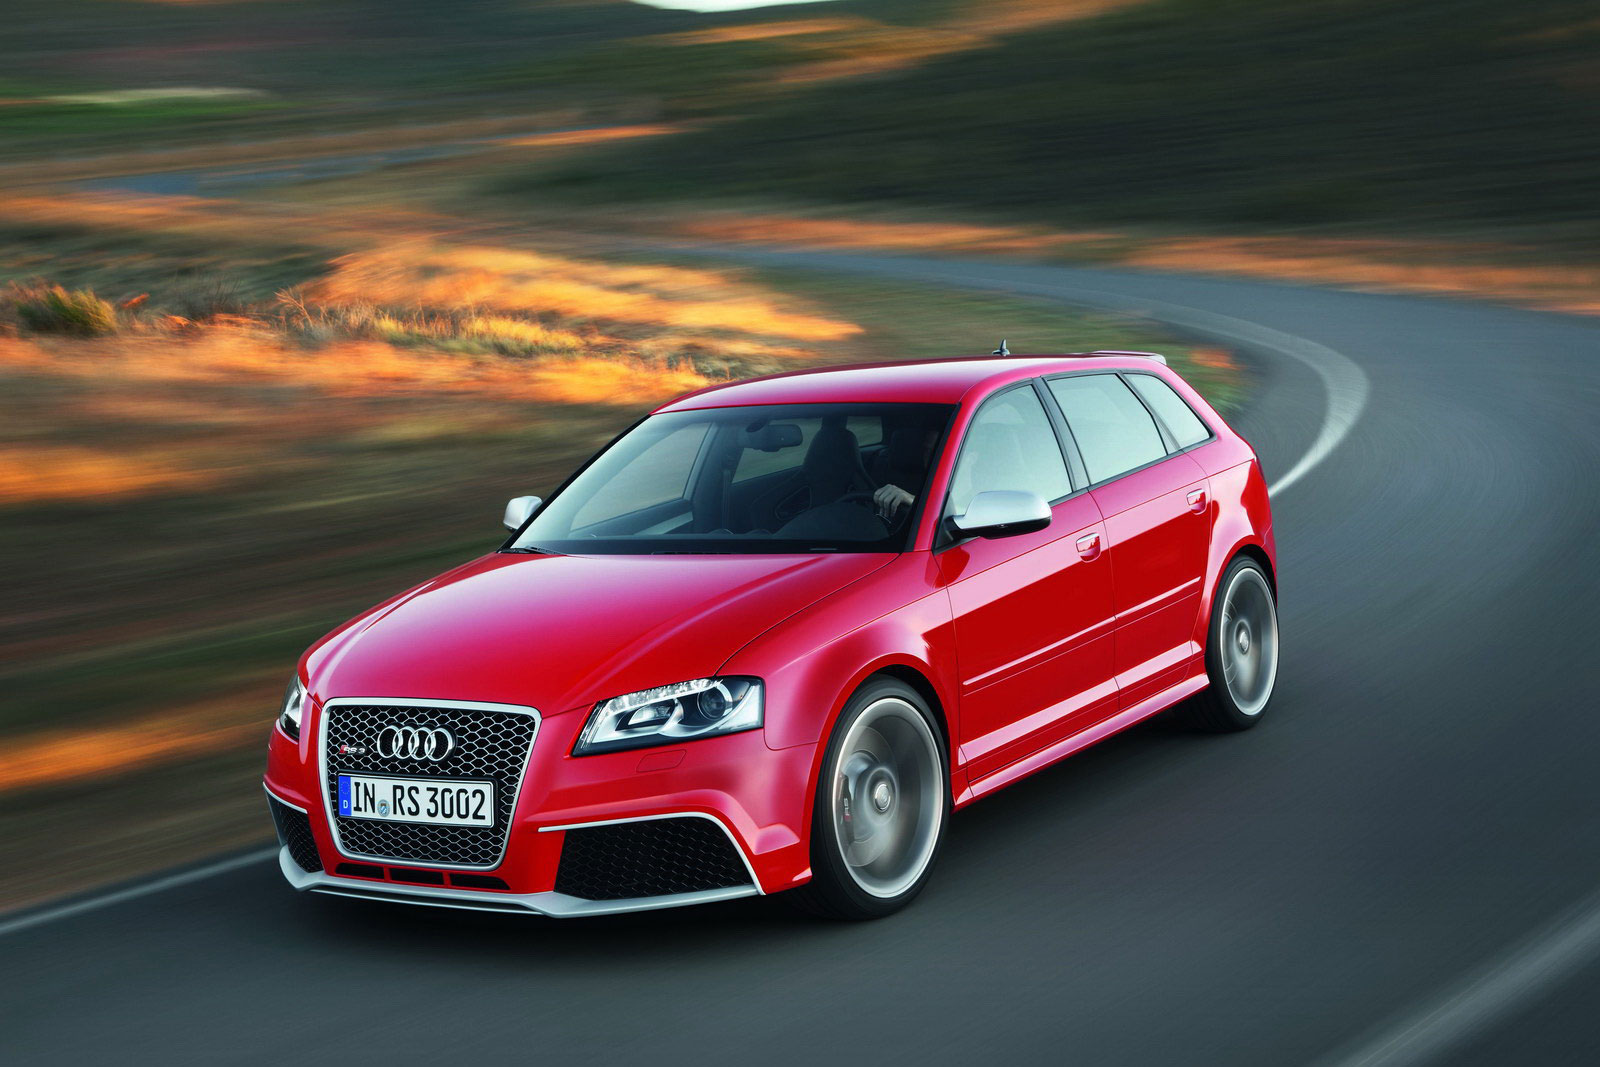 2011 Audi RS3 Sportback Hatchback 5-door